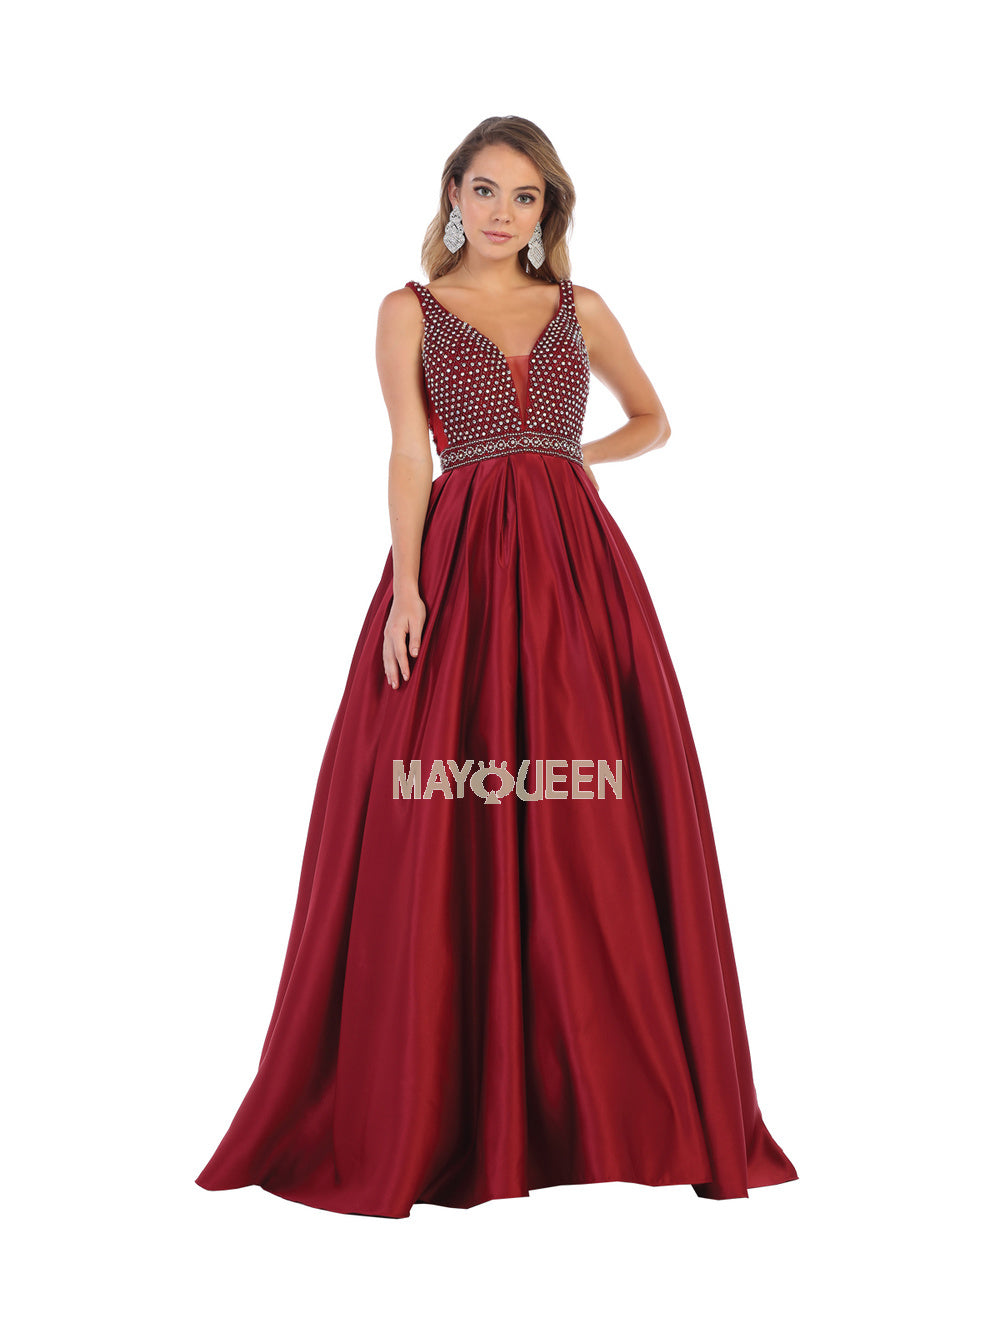 MQ 7680 - Shoulder straps rhinestones taffeta ballgown with side pockets - Diggz Prom